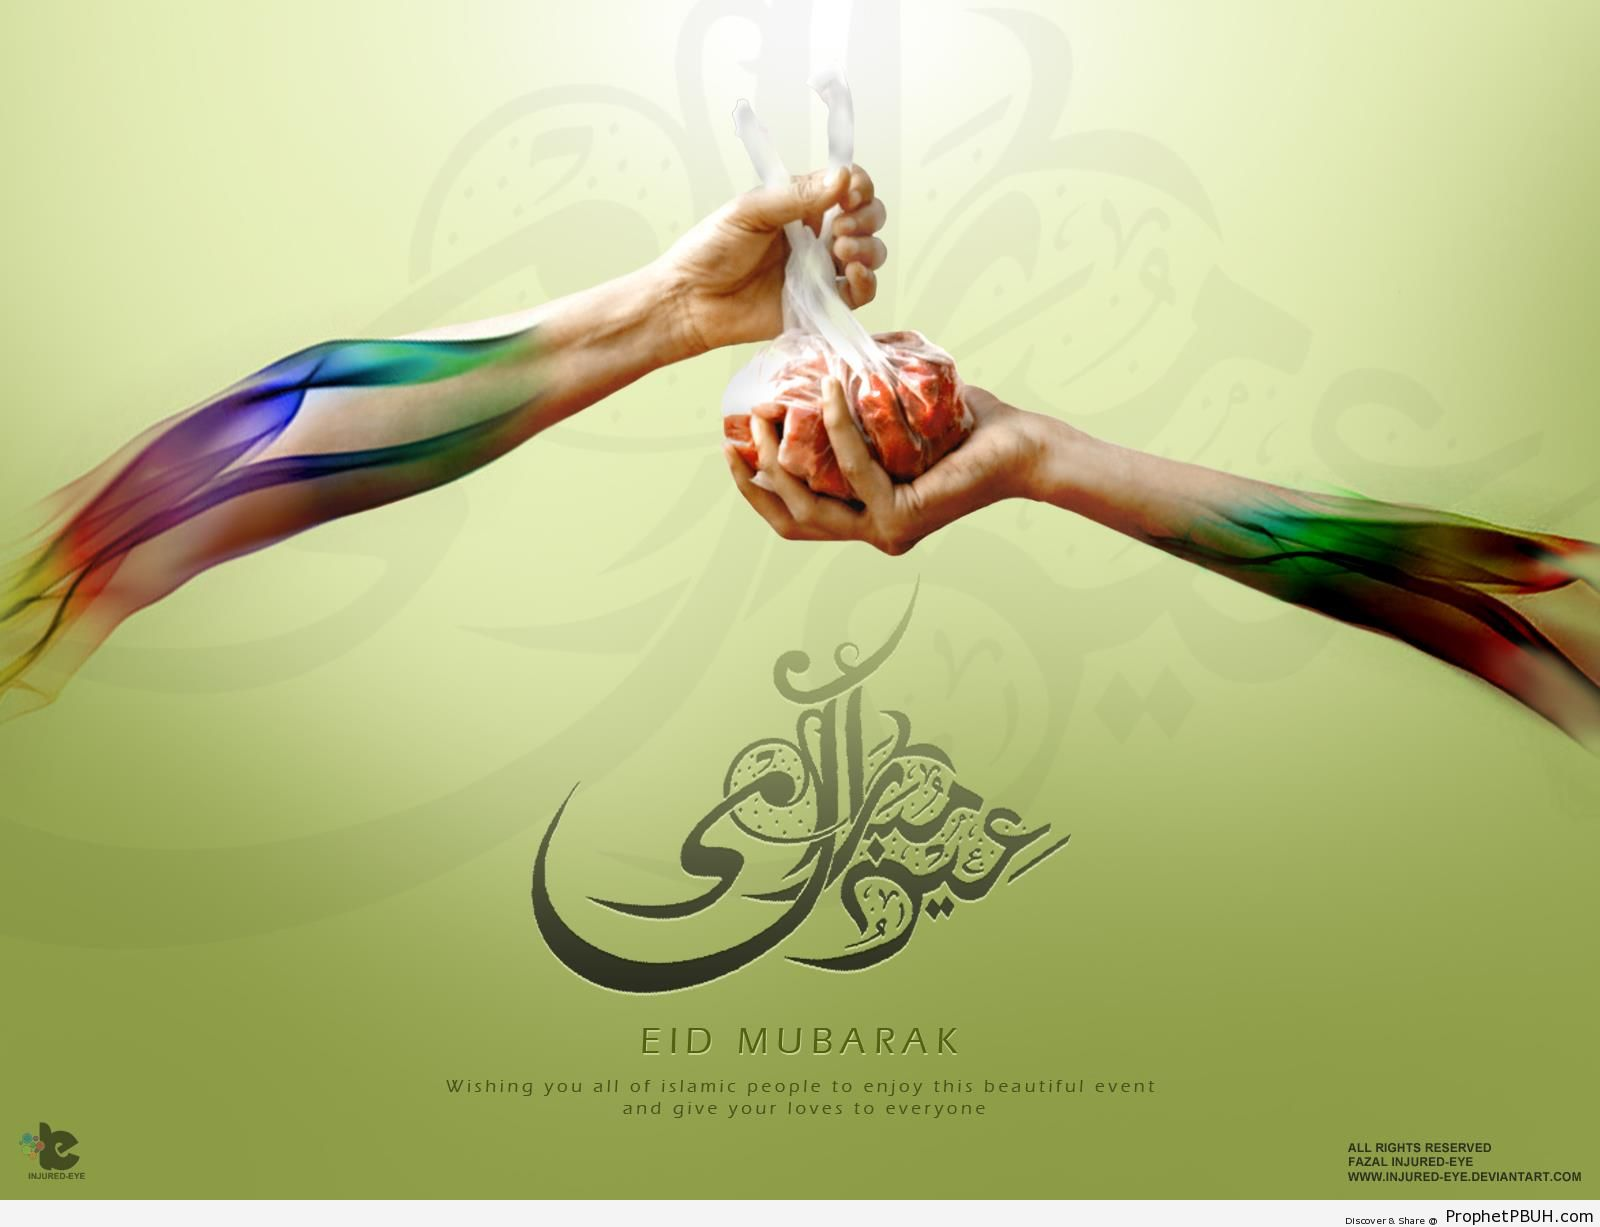 Eid Mubarak Wallpaper (1600 x 1200) - Eid Mubarak Greeting Cards, Graphics, and Wallpapers -